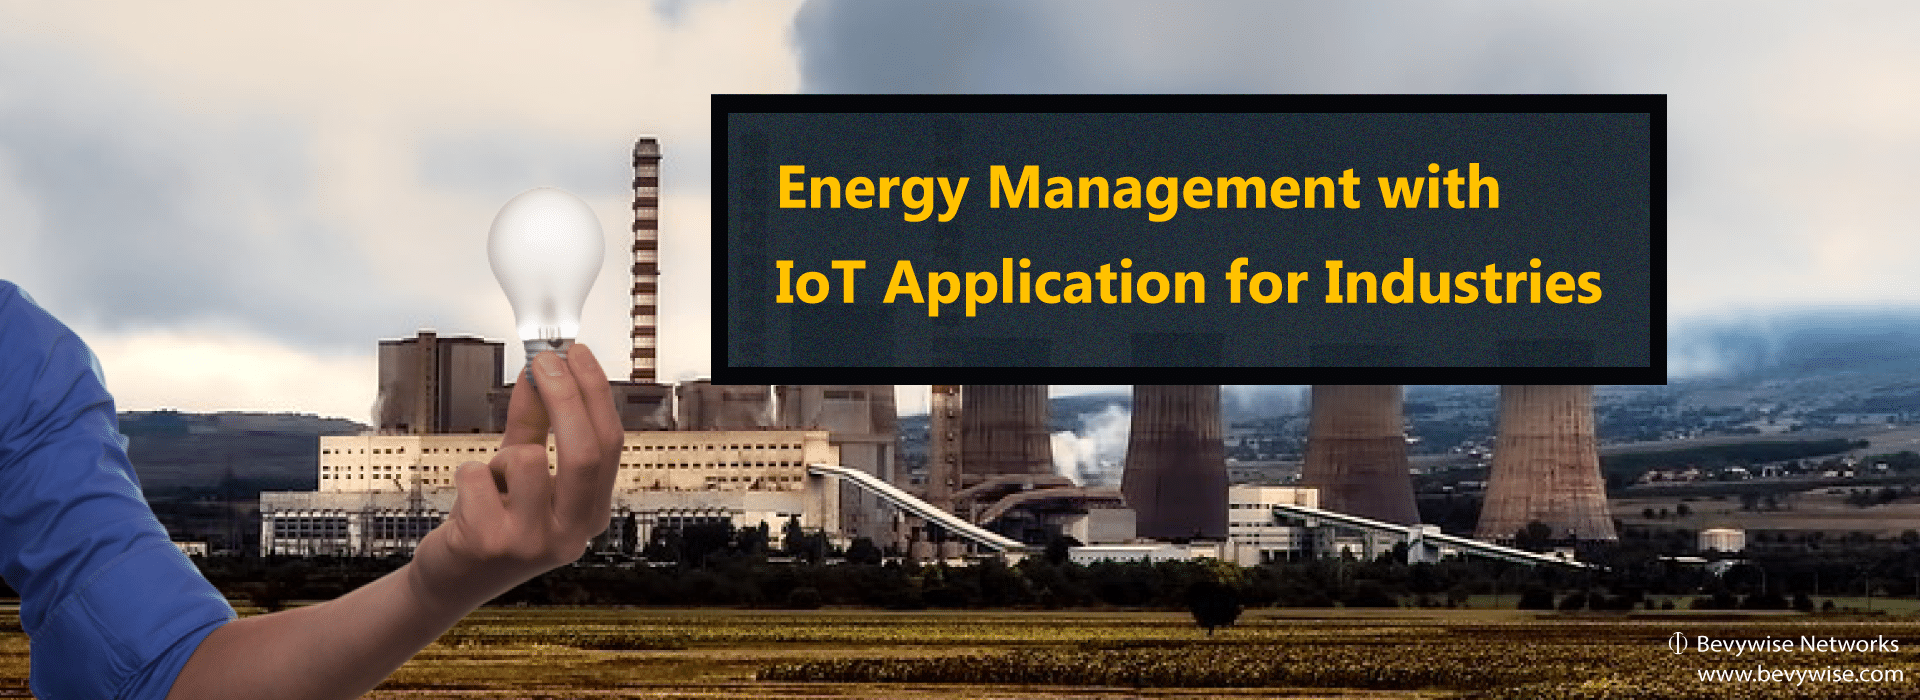 Energy Management with IoT Application for Industries